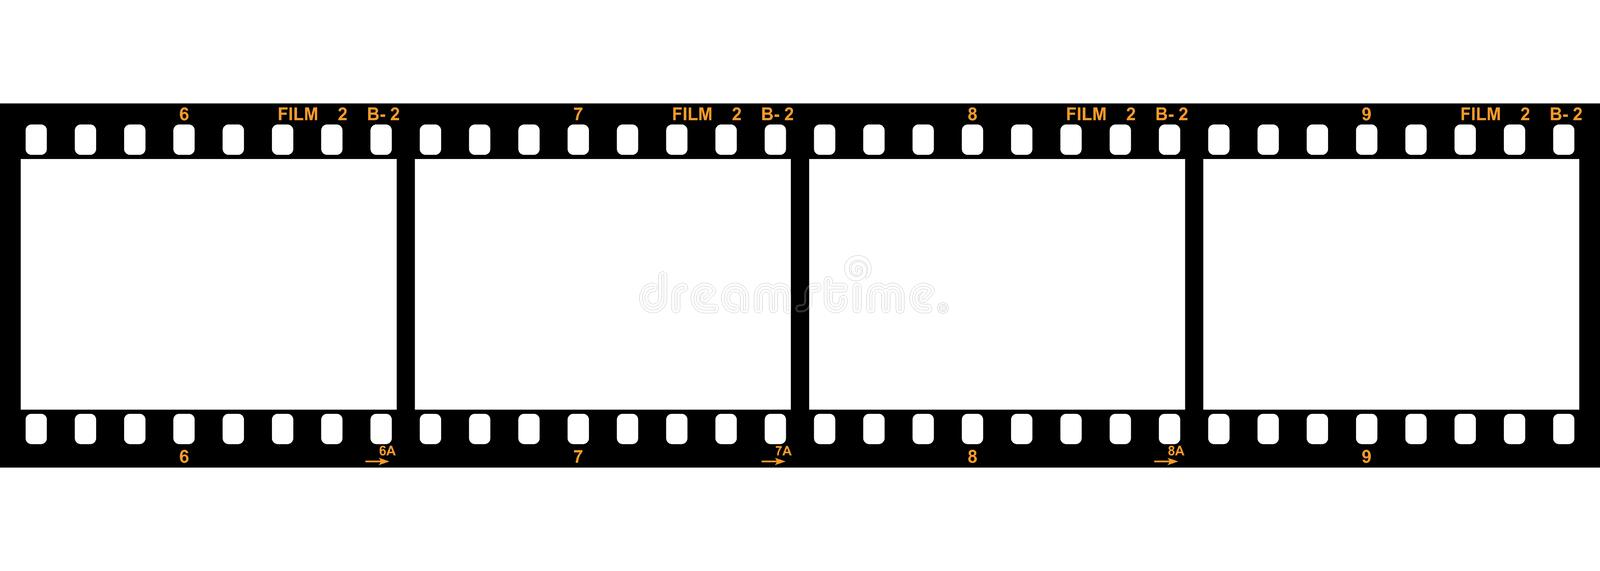 35 film strip vector. Stck vector 35mm film strip isolated on white background vector illustration